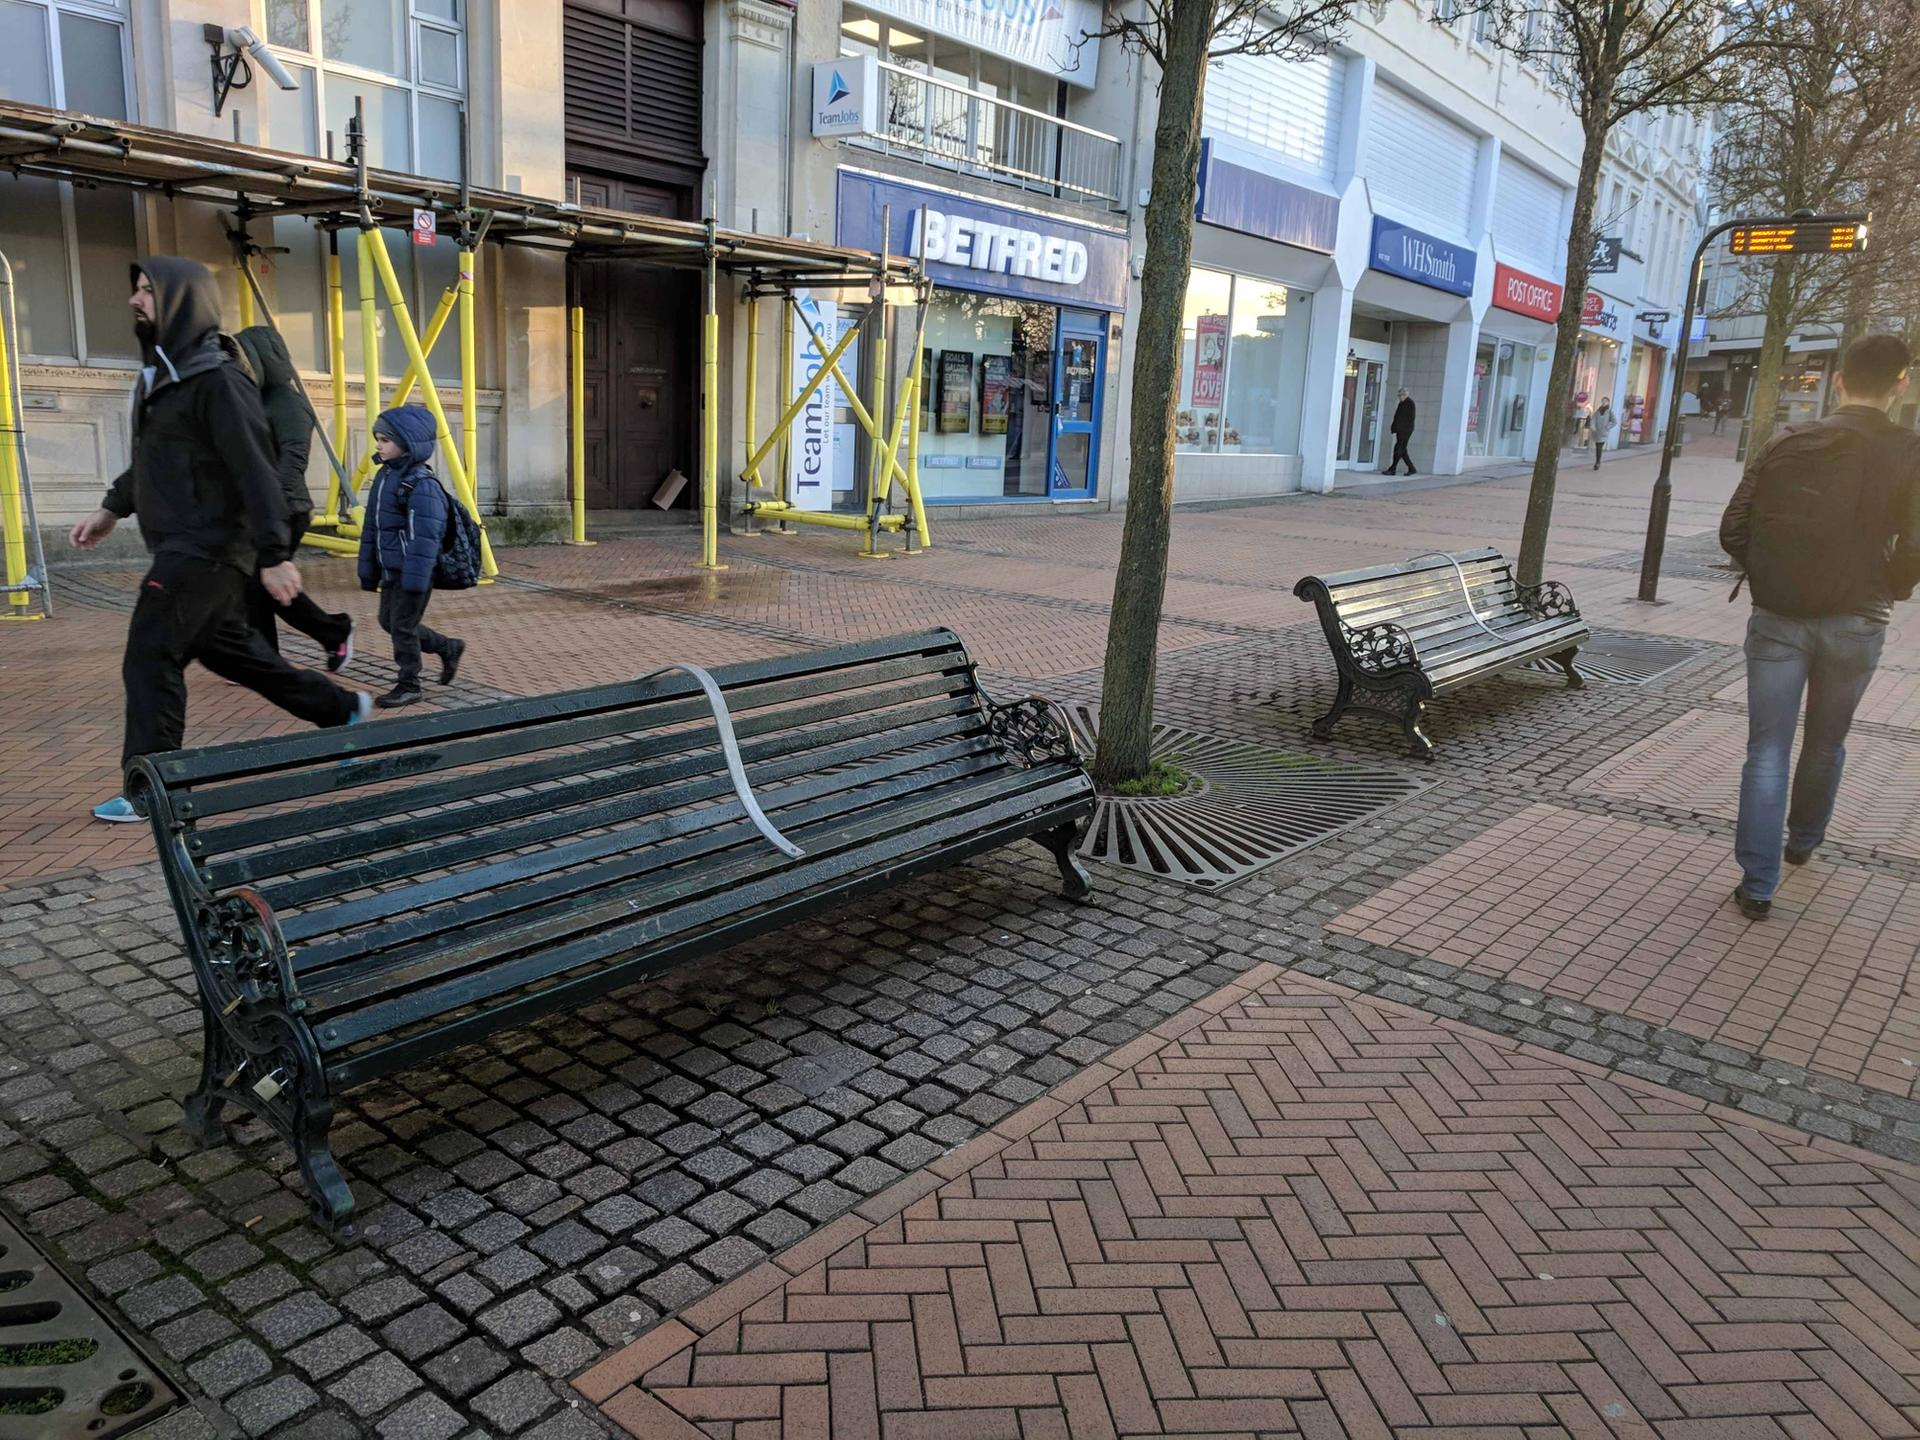 Bournemouth Council installed bars on benches to prevent homeless people from sleeping on them Stuart Semple